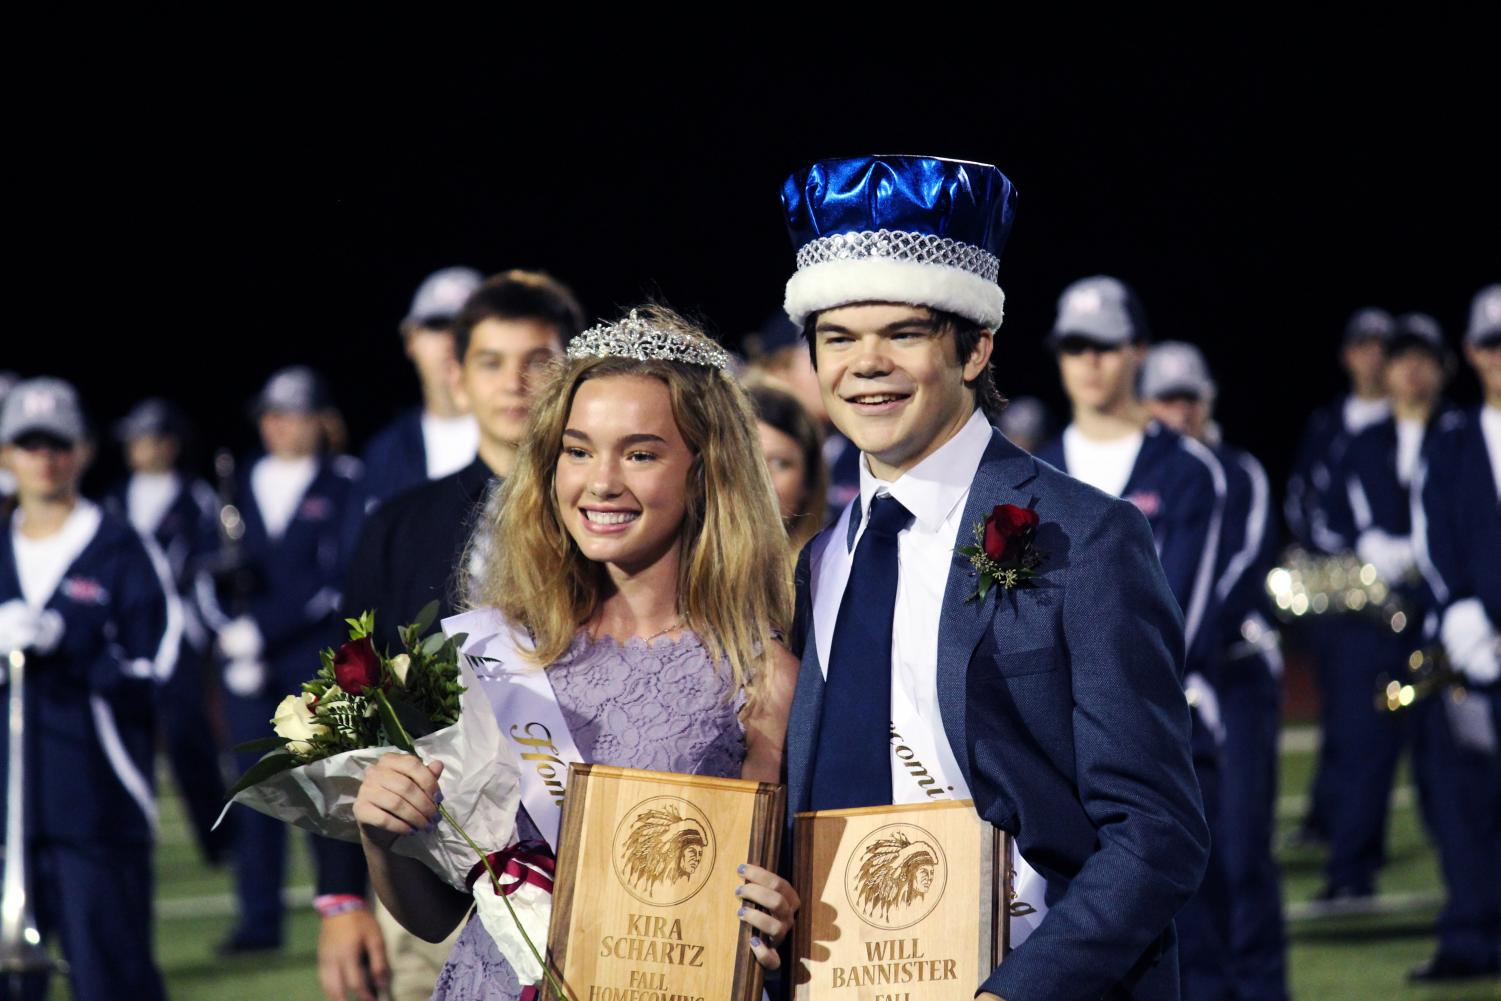 Seniors+Kira+Schartz+and+Will+Bannister+stand+arm-in-arm+as+they+display+their+Homecoming+crowns.+The+two+were+crowned+at+the+football+game+on+Sept.+20+ad+MHS+took+on+Seaman+High.